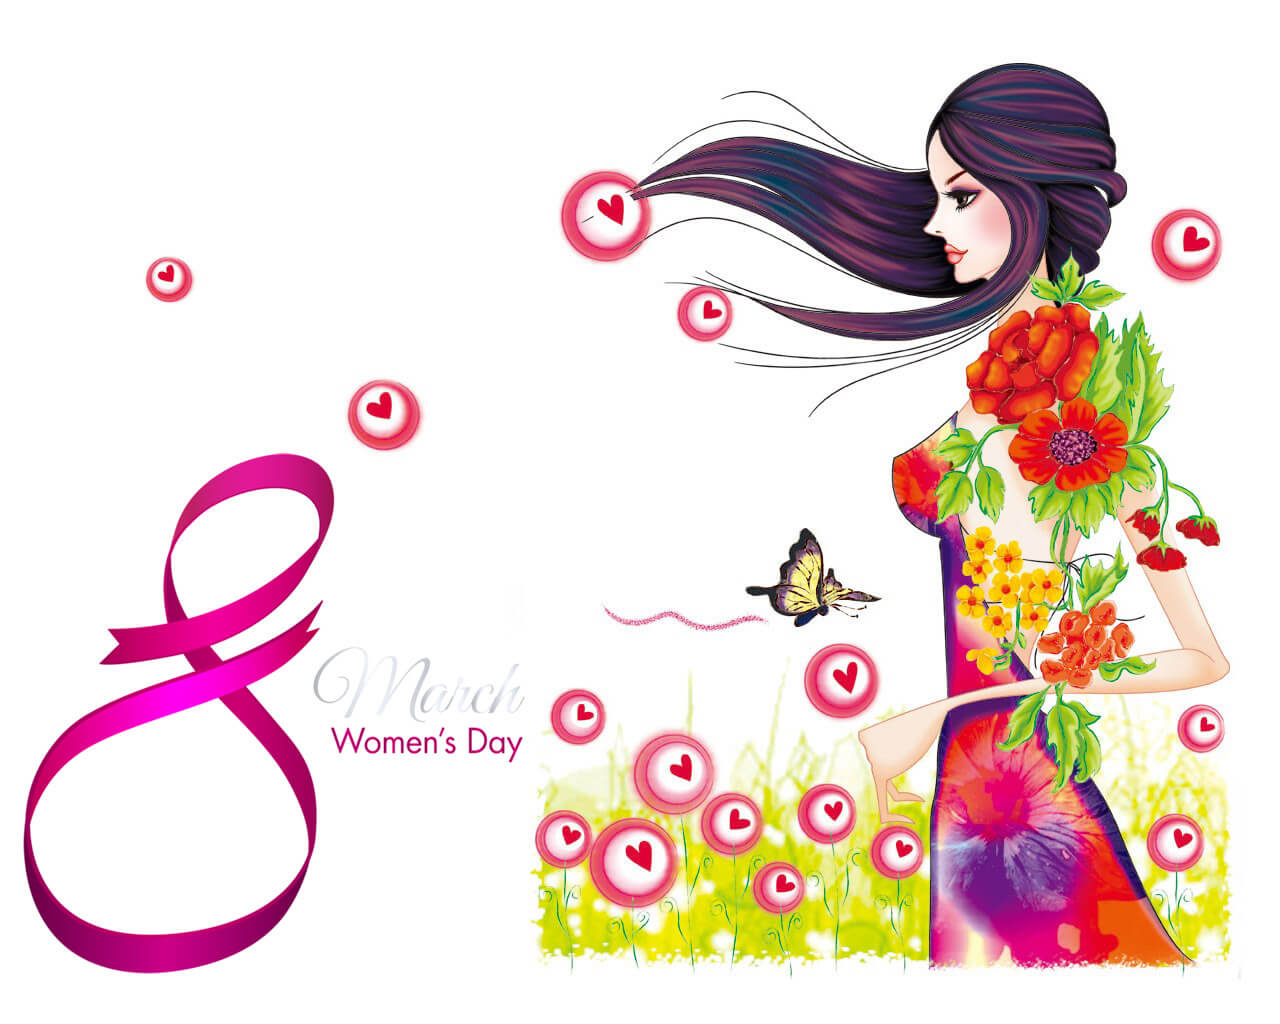 happy womens day wishes modern art hd wallpaper